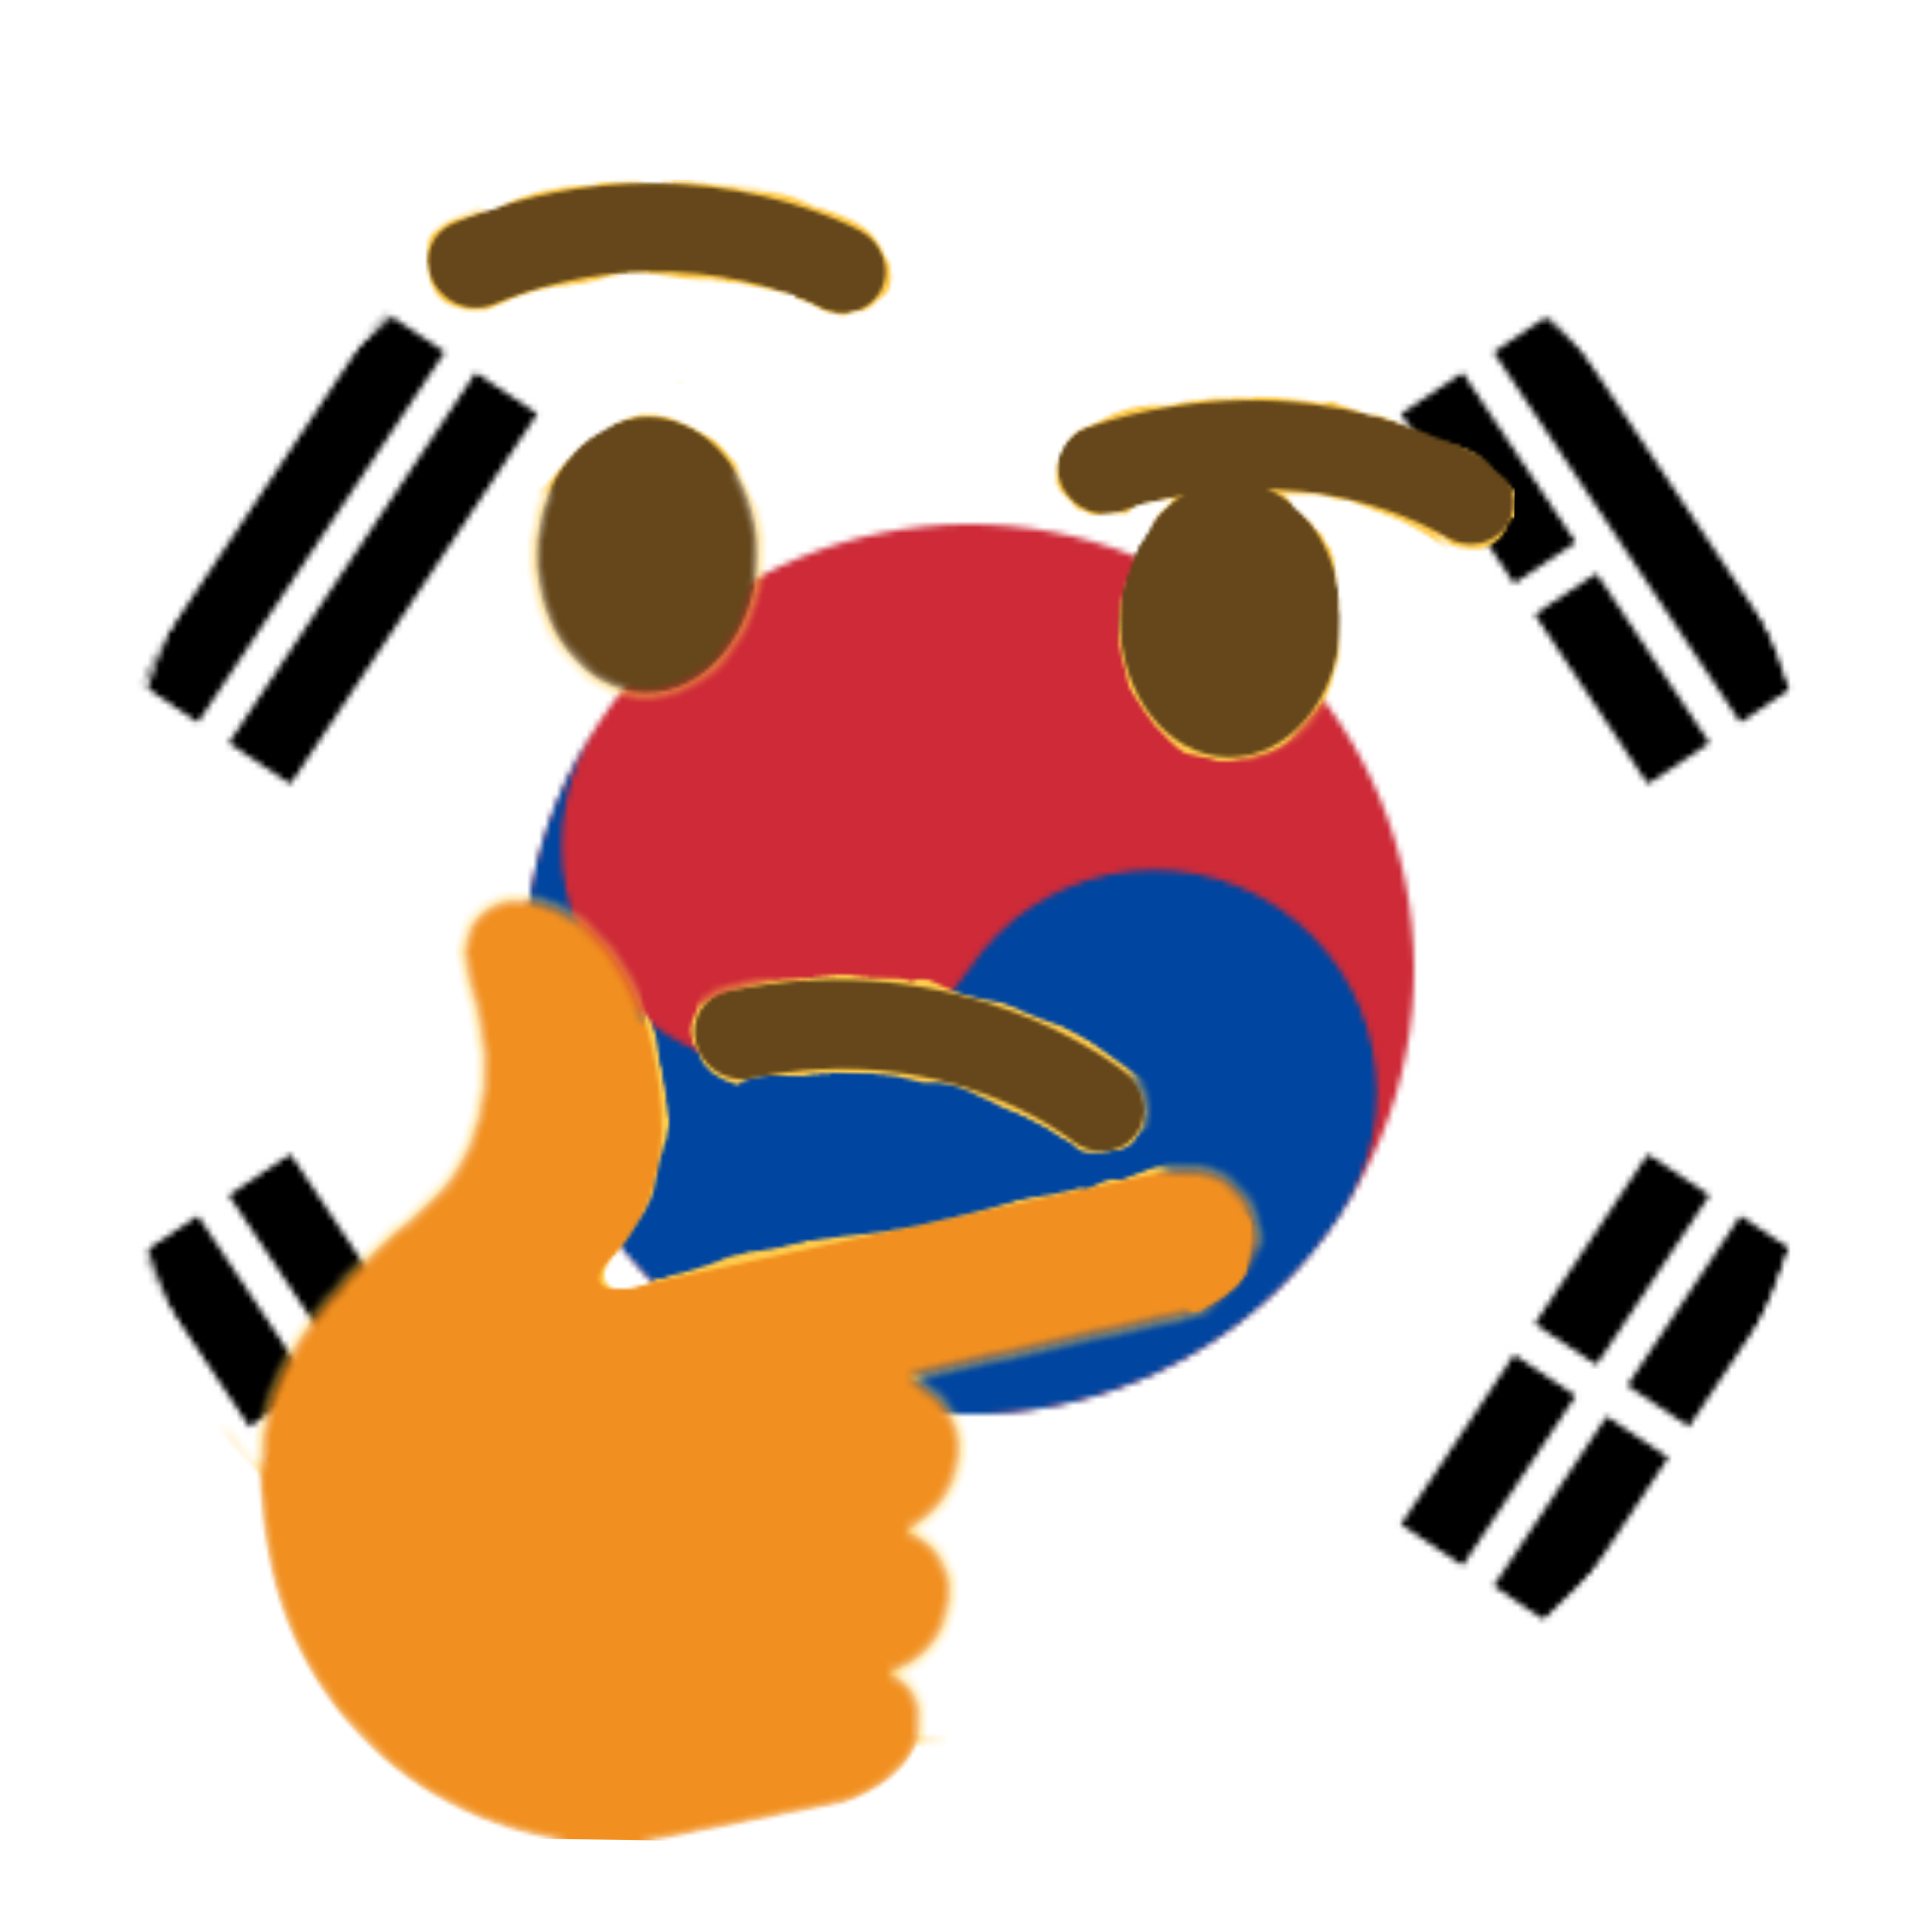 thinkkr Discord Emoji